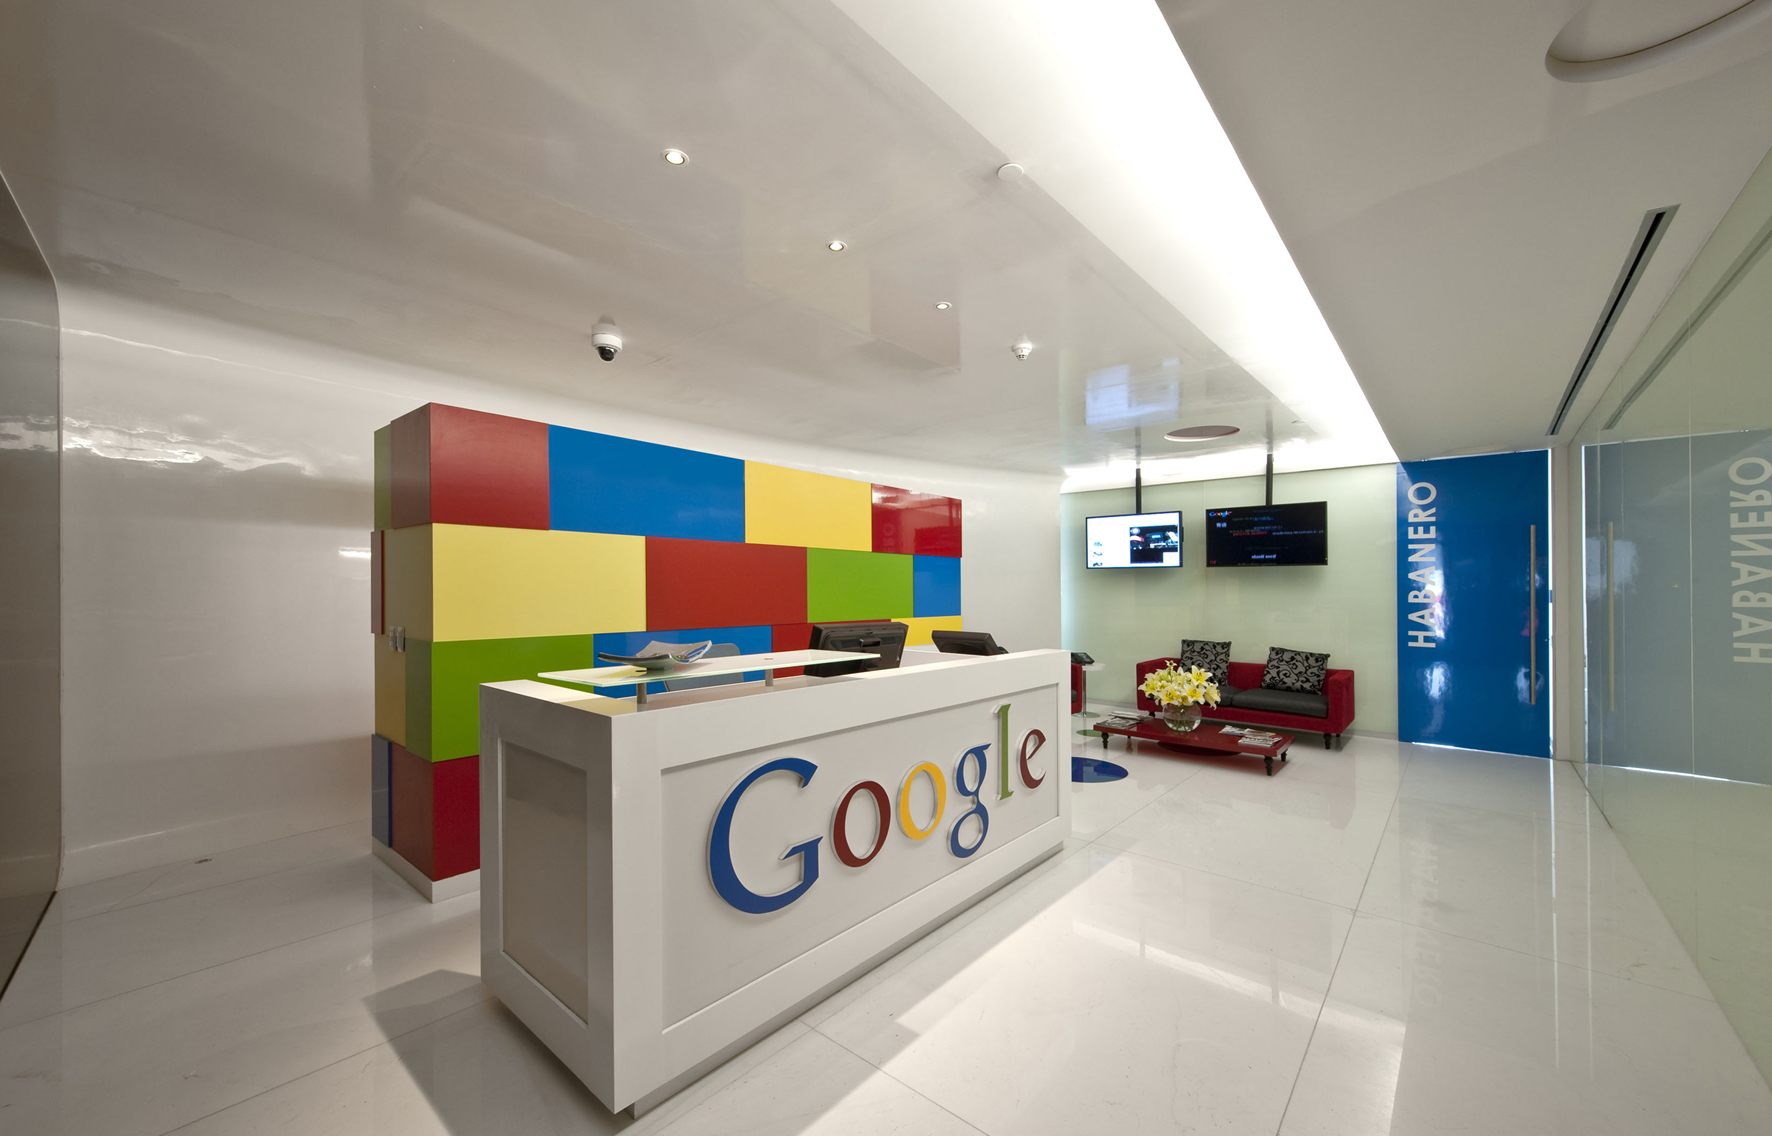 Why Google offered 1.47 Crore package to BITS Pilani, whereas only about 80 Lakh to MIT and Stanford